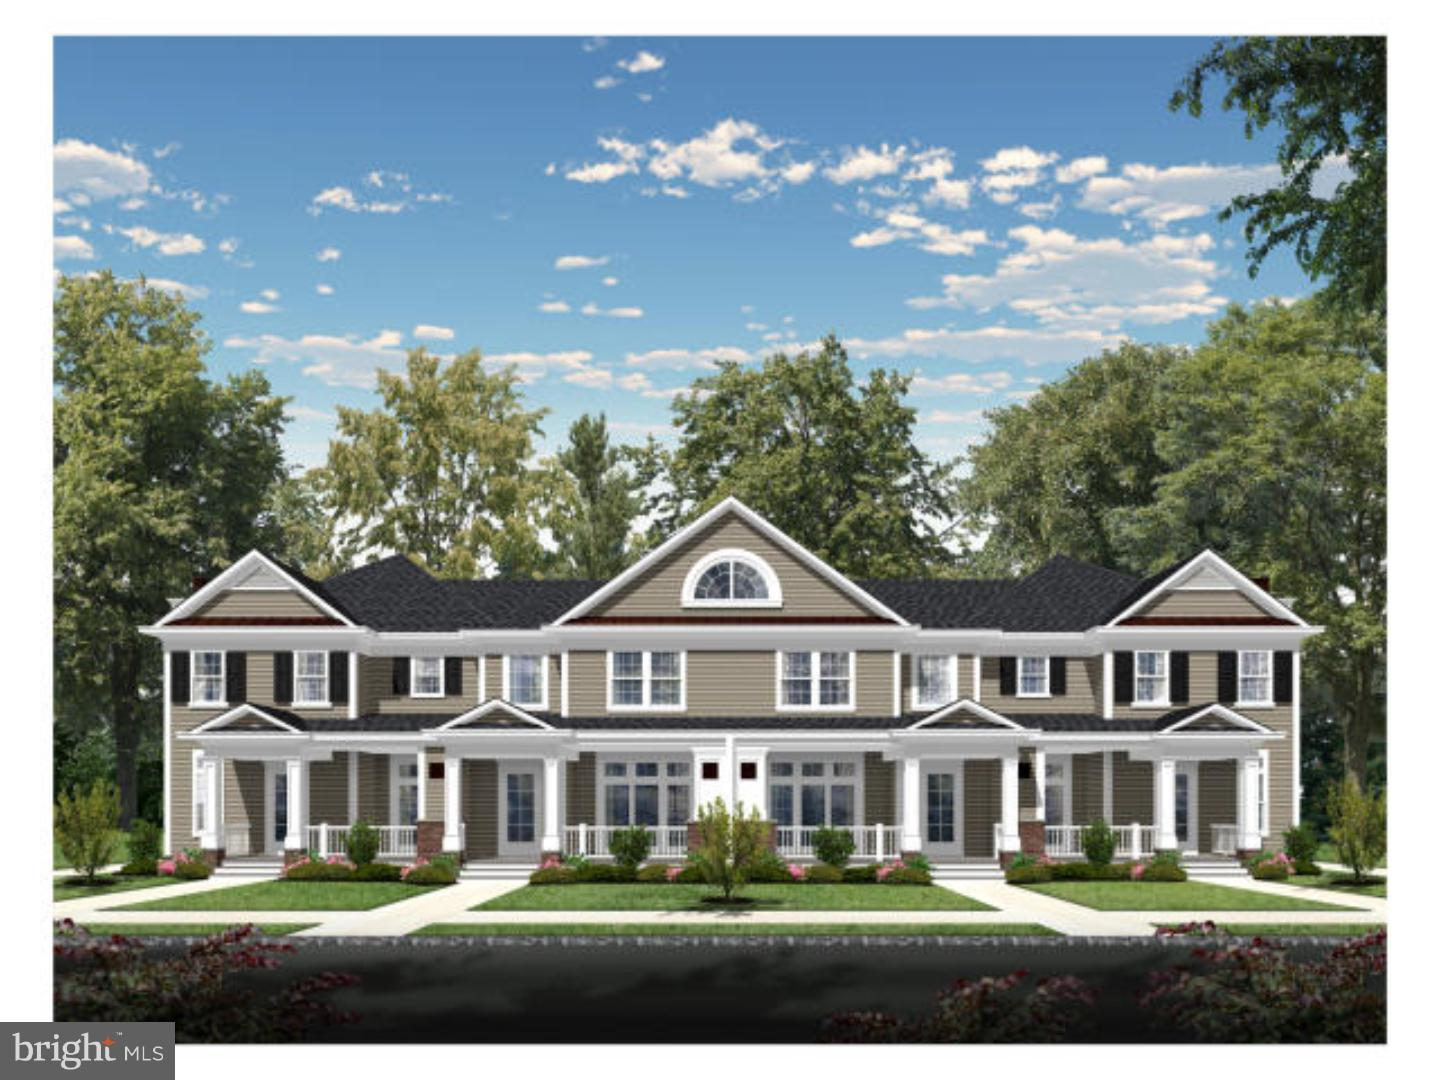 Property for Sale at 15 HAMILTON Drive Cranbury, New Jersey 08512 United States